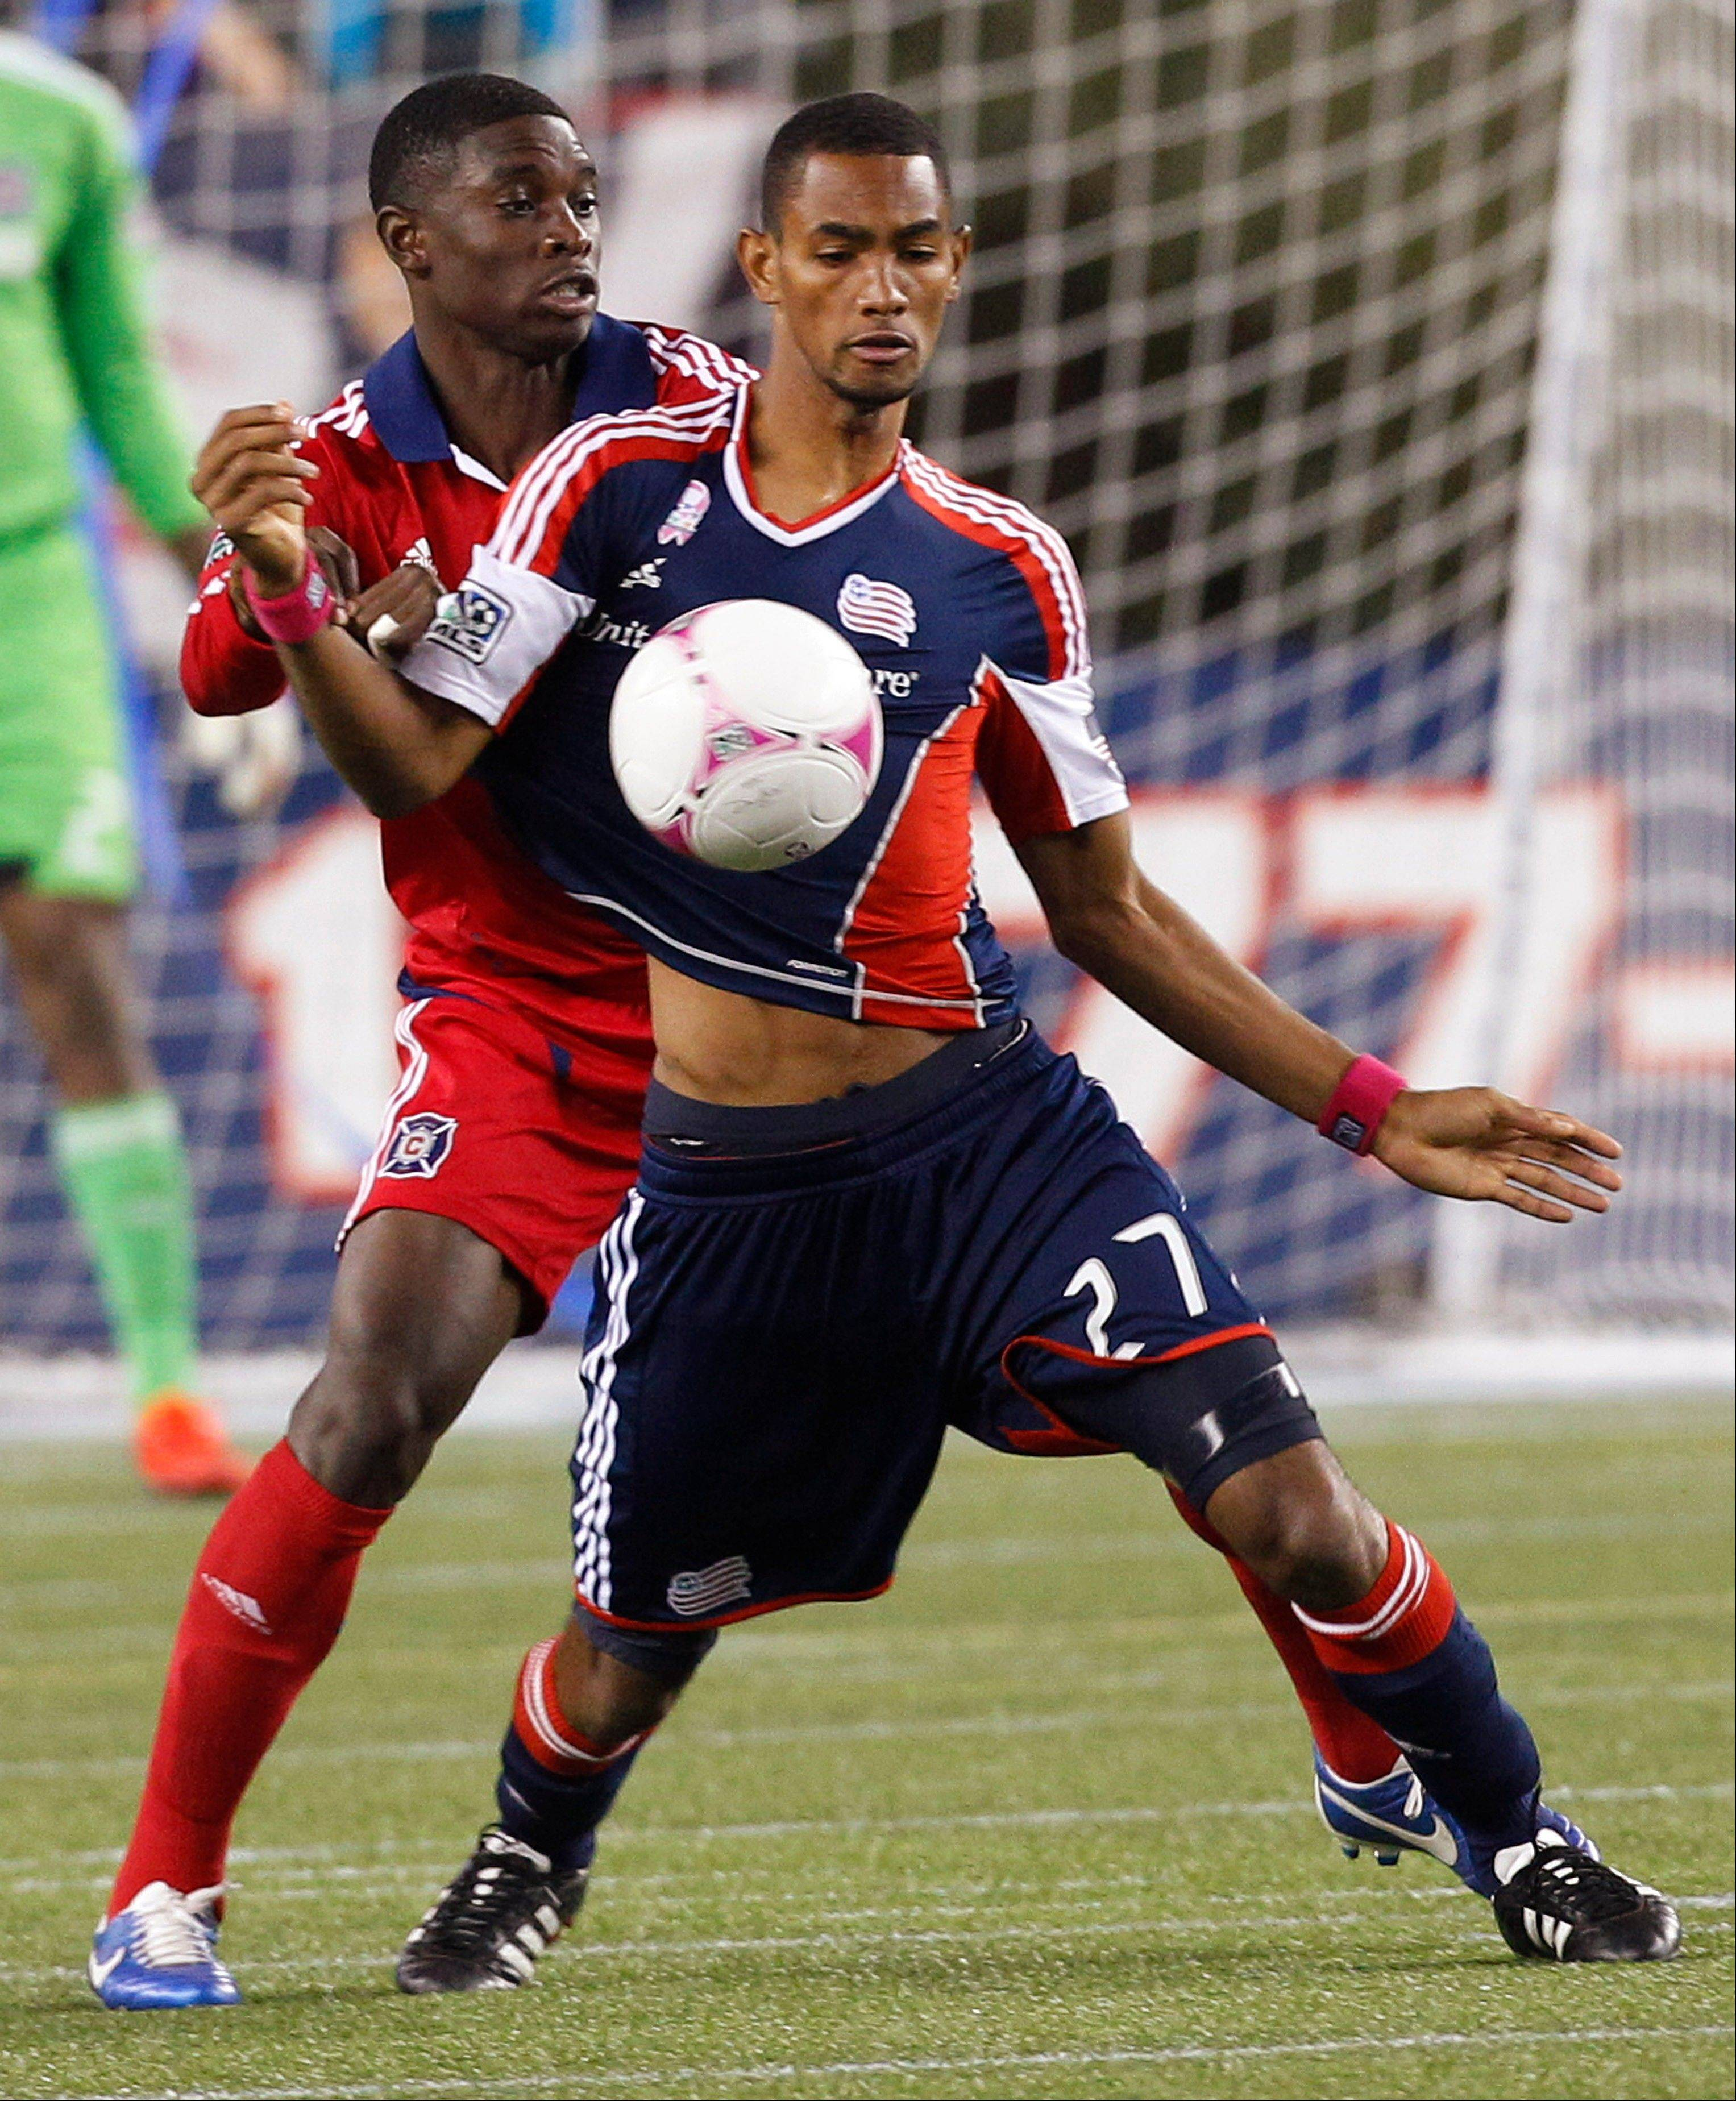 Jalil Anibaba (6) is competing for the starting right back spot in preseason training with the Chicago Fire. (AP Photo/Stephan Savoia)